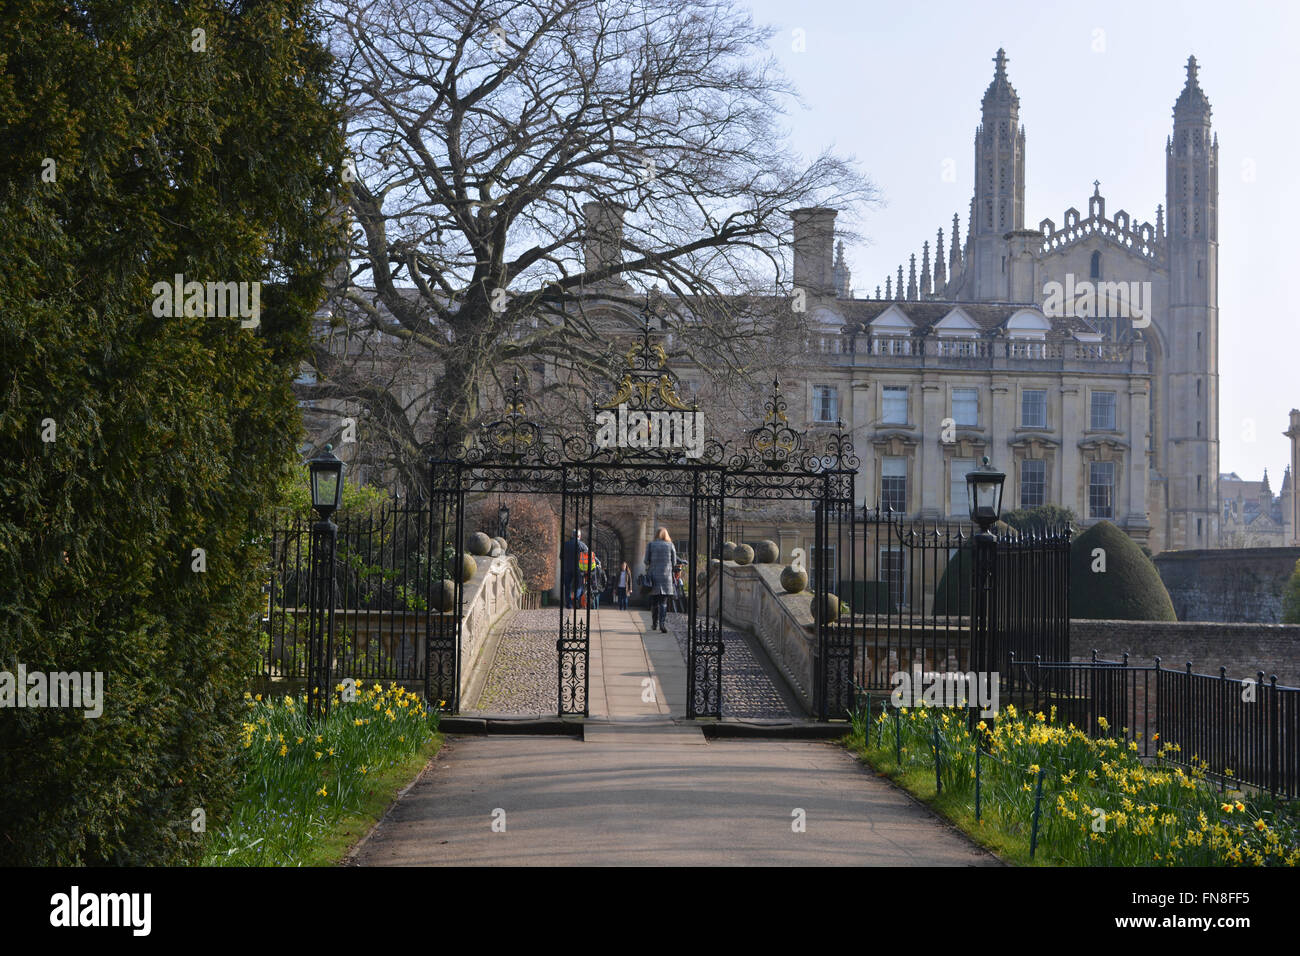 Clare Bridge from The Avenue, looking to Clare College and Scholars' Garden, University of Cambridge, England, - Stock Image